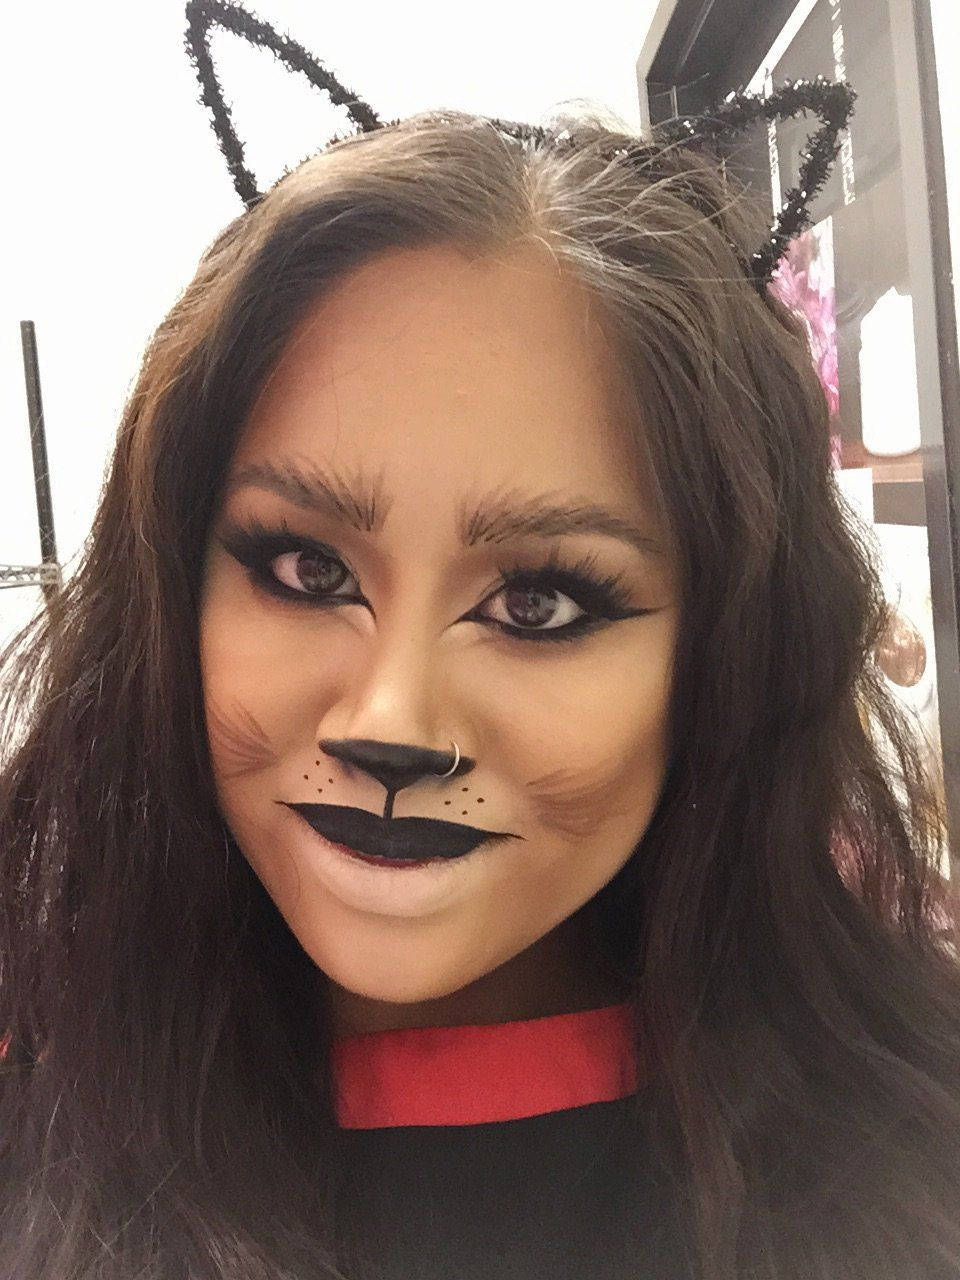 Purrrrr! by makeupbycass. Tag your pics with #Halloween and #SephoraSelfie on Sephora's Beauty Board for a chance to be featured!